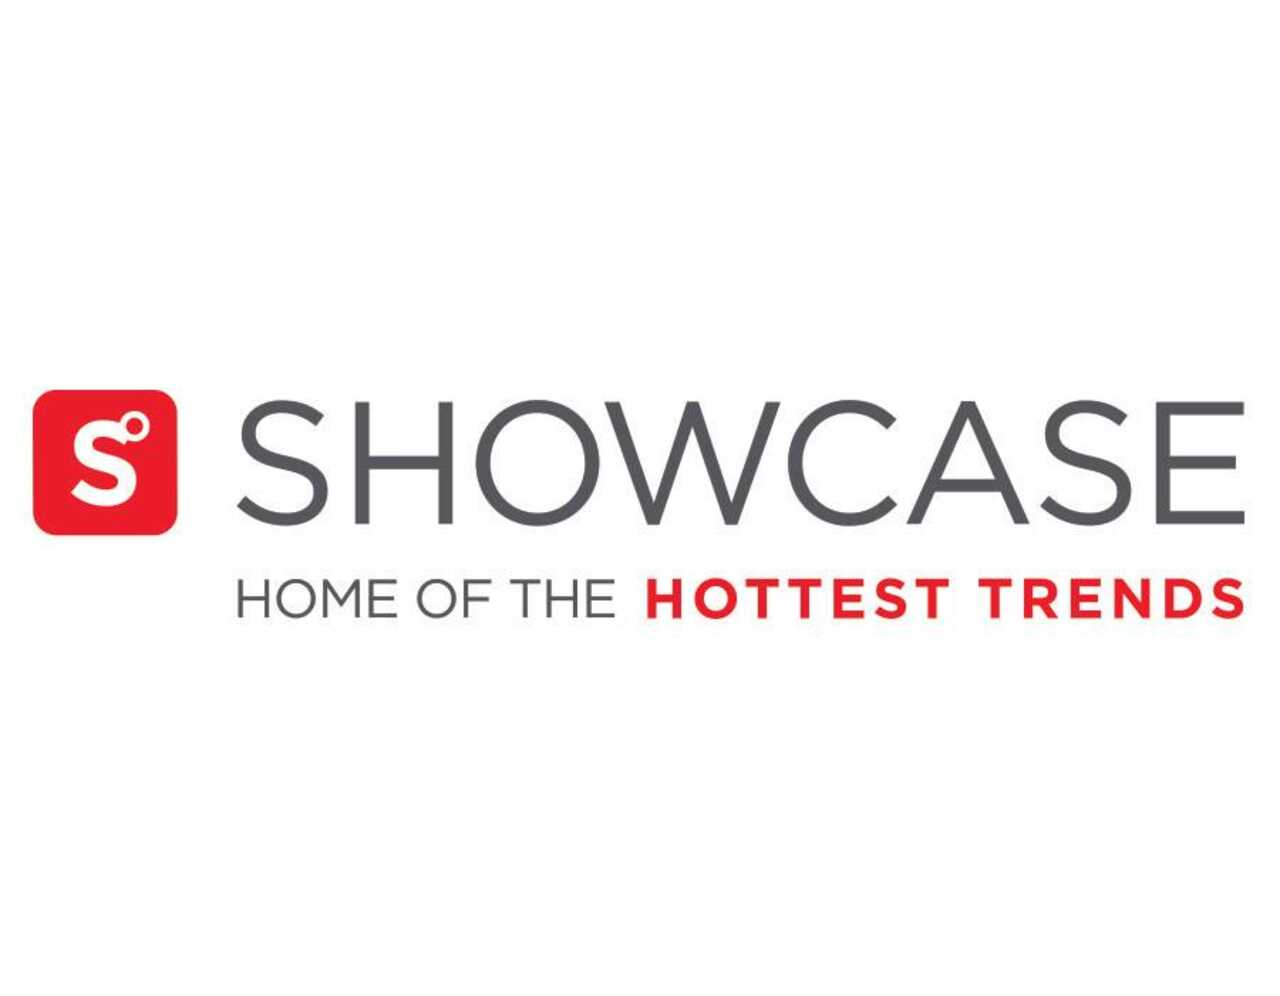 Showcase - Coquitlam Centre - Shop Local - Open Remotely in Coquitlam BC